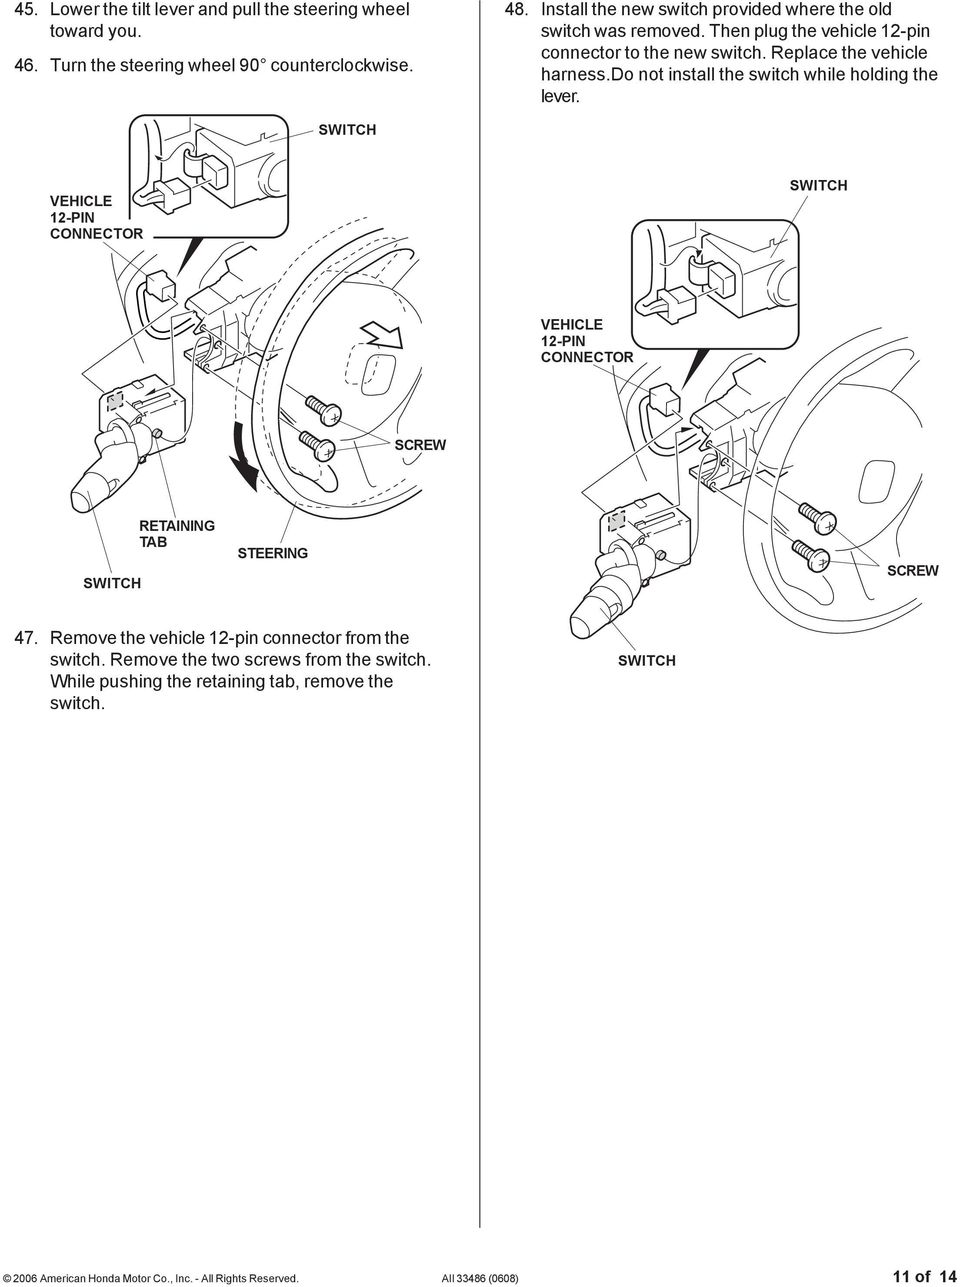 Installation Instructions Pdf Rib Harness Clip Wiring Do Not Install The Switch While Holding Lever Vehicle 12 Pin